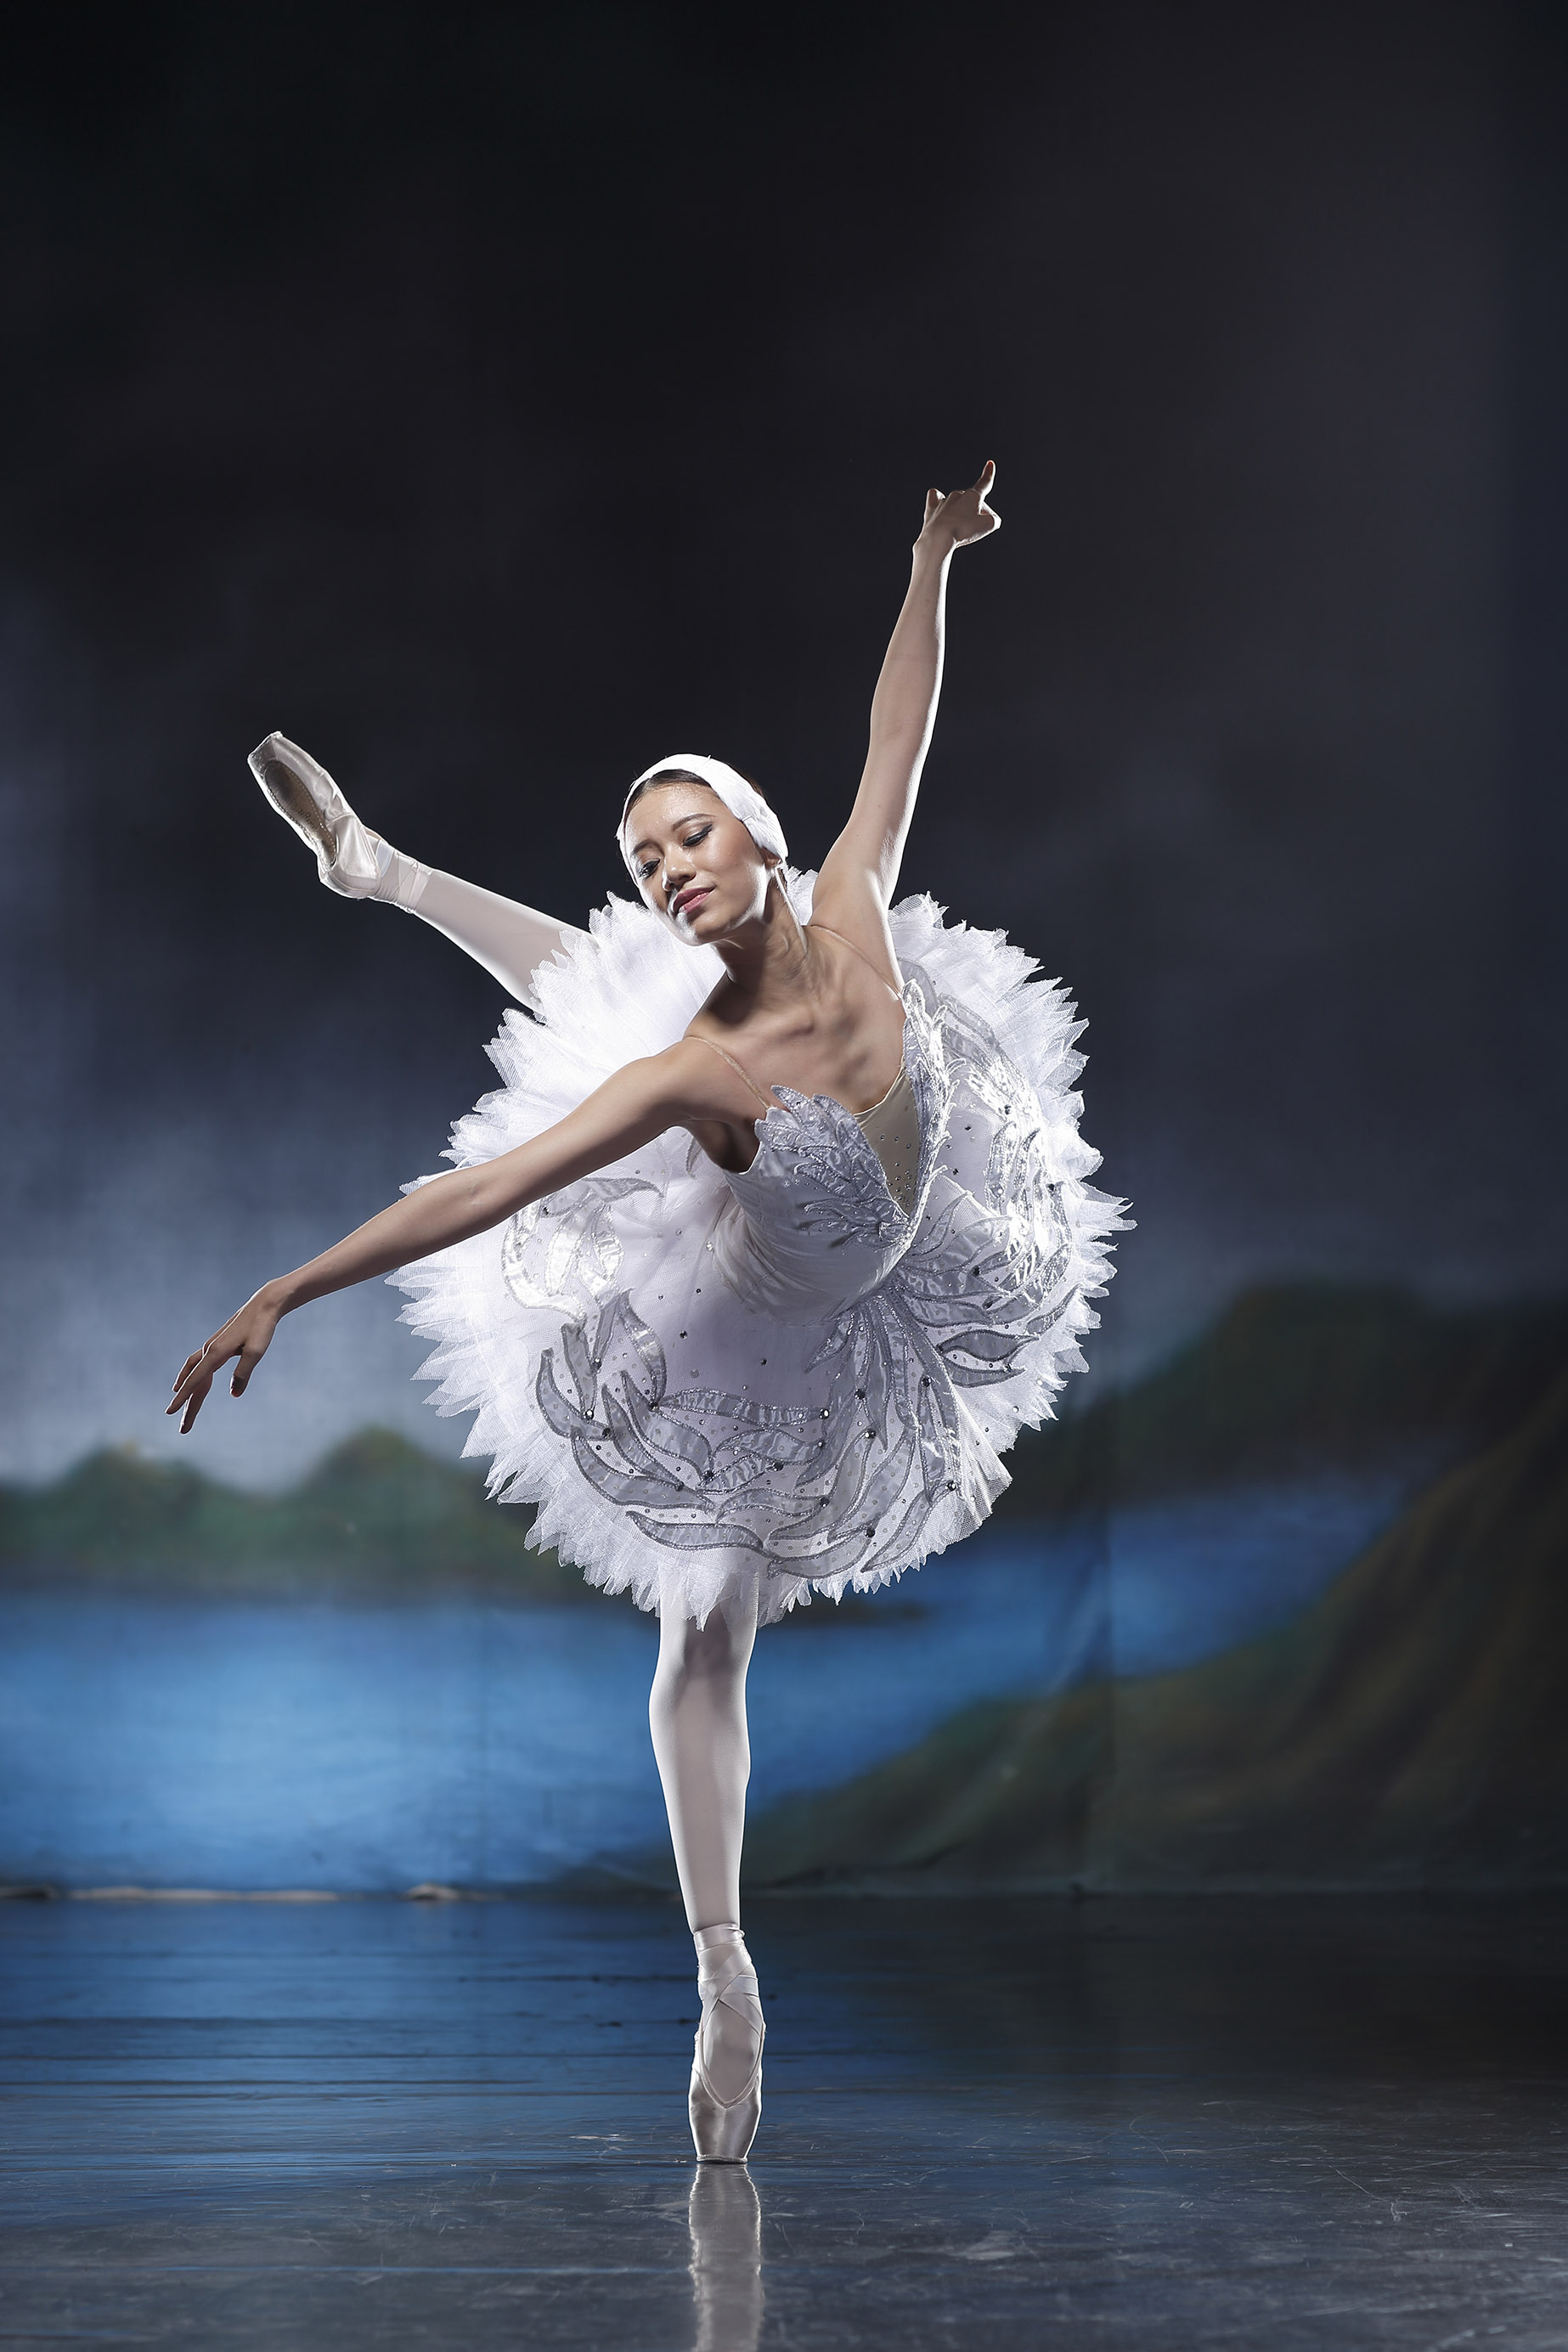 Dancing as Odette, the White Swan, in    The Swan, The Fairy and the Princess    is a perfect fit for Abigail Oliveiro's lithe, willowy frame and distinct musicality